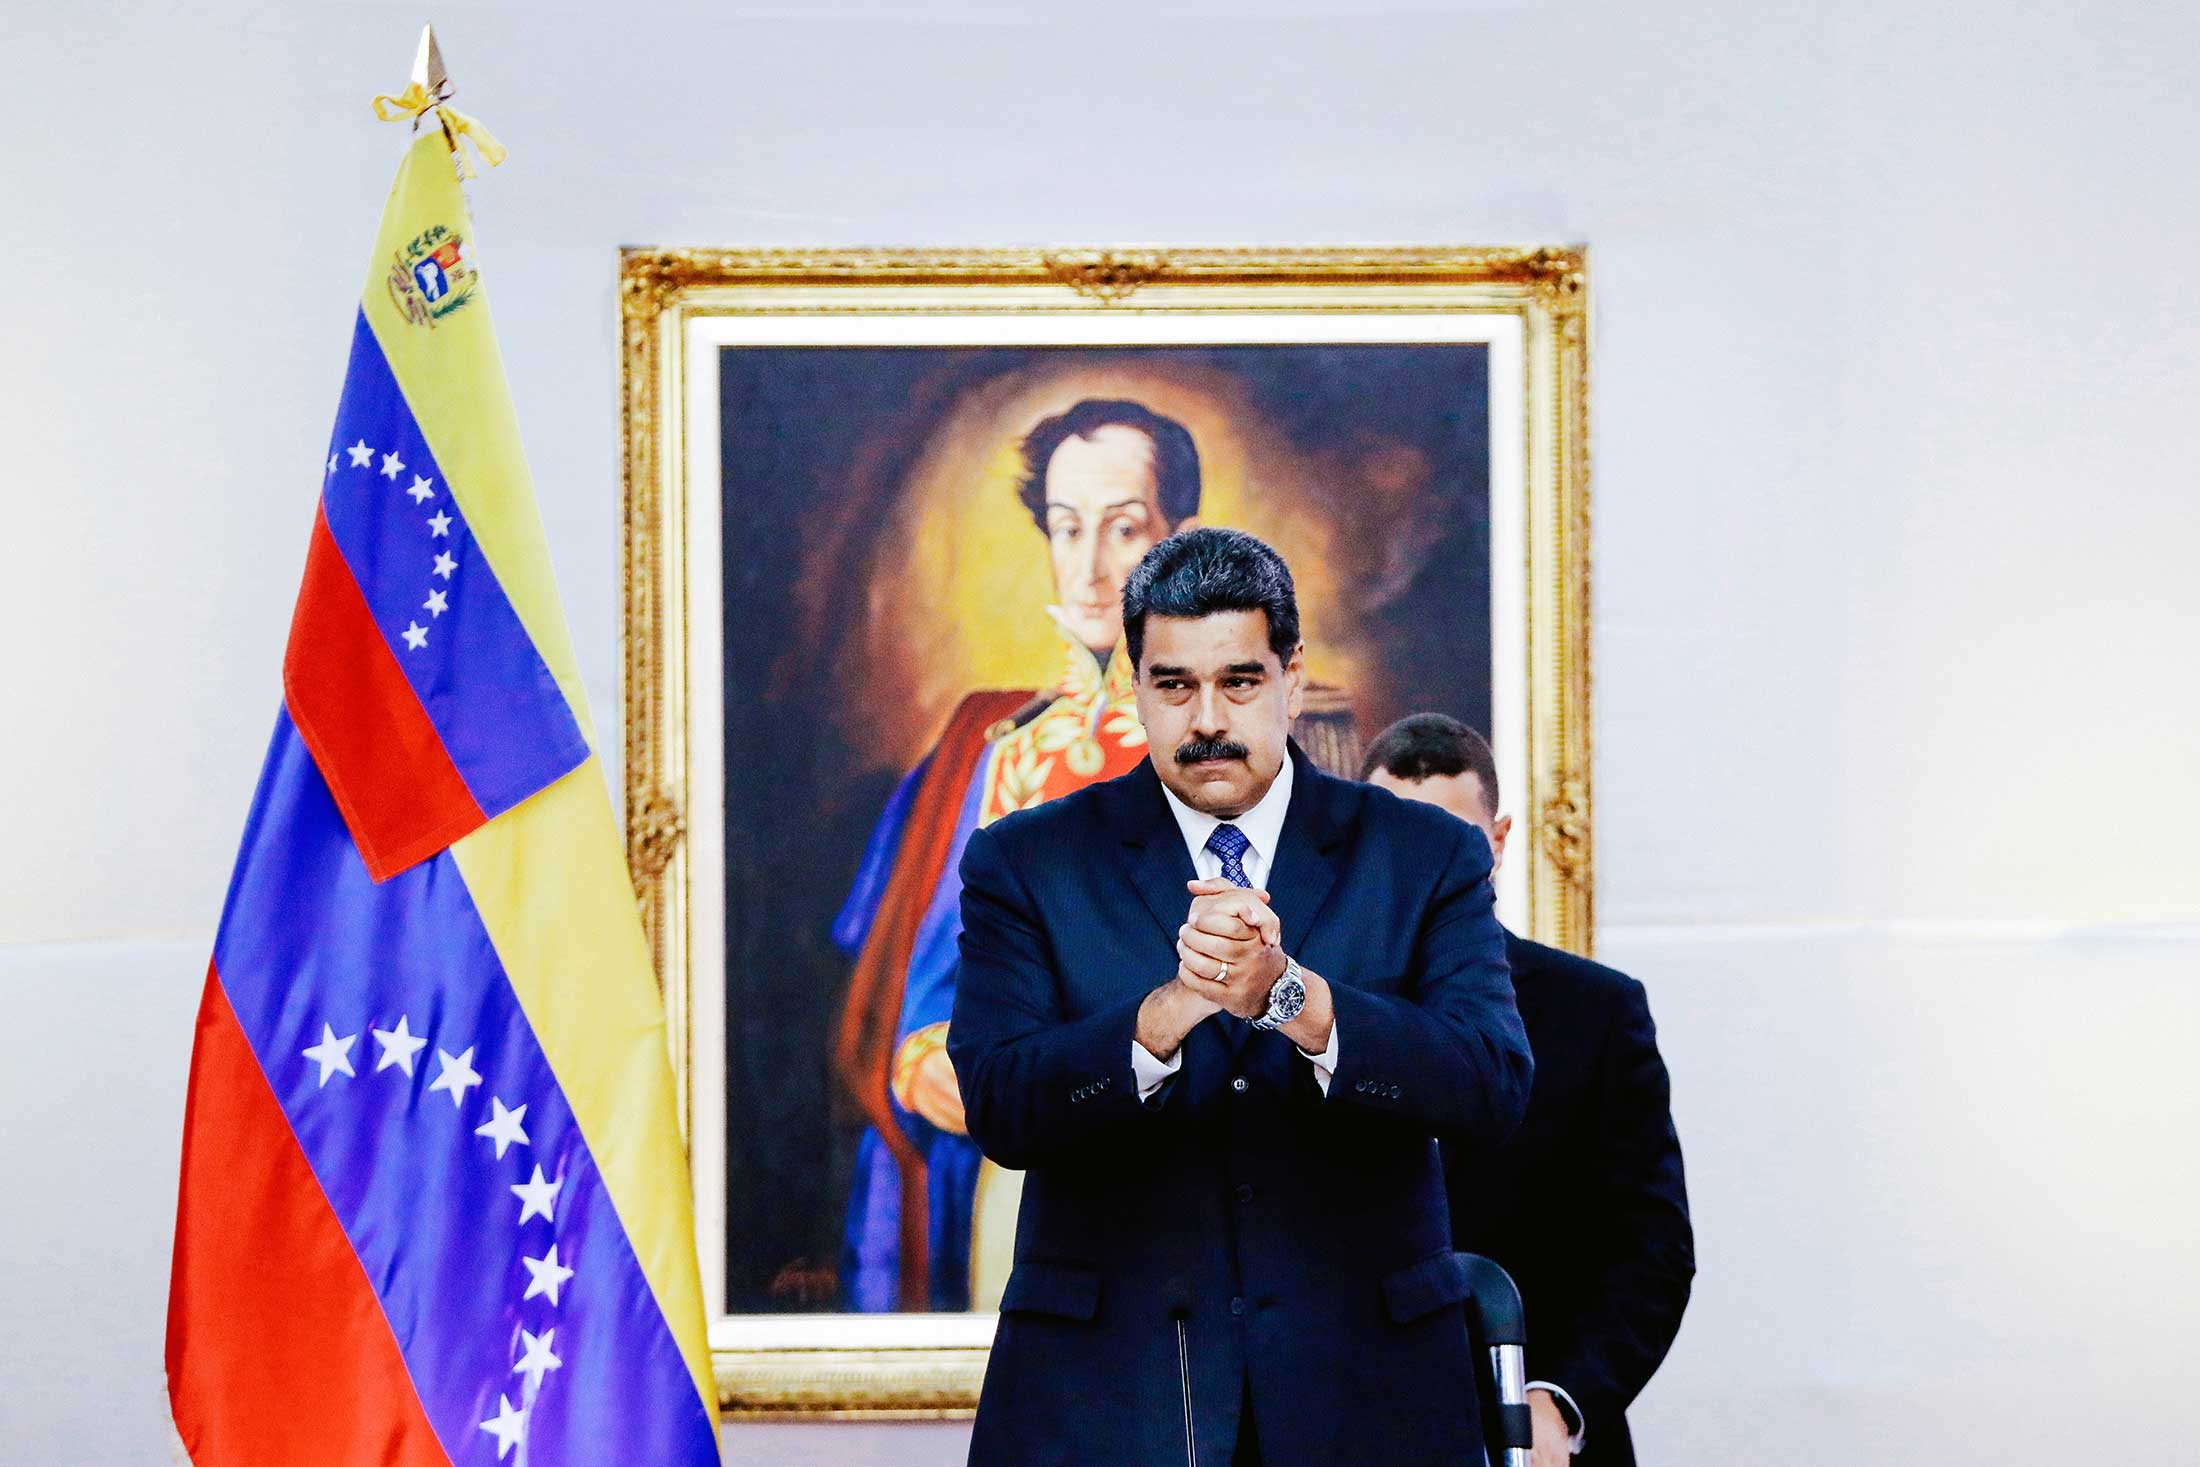 Venezuela President Nicolás Maduro greets international observers for the election at the presidential palace in Caracas, Venezuela, on Friday.